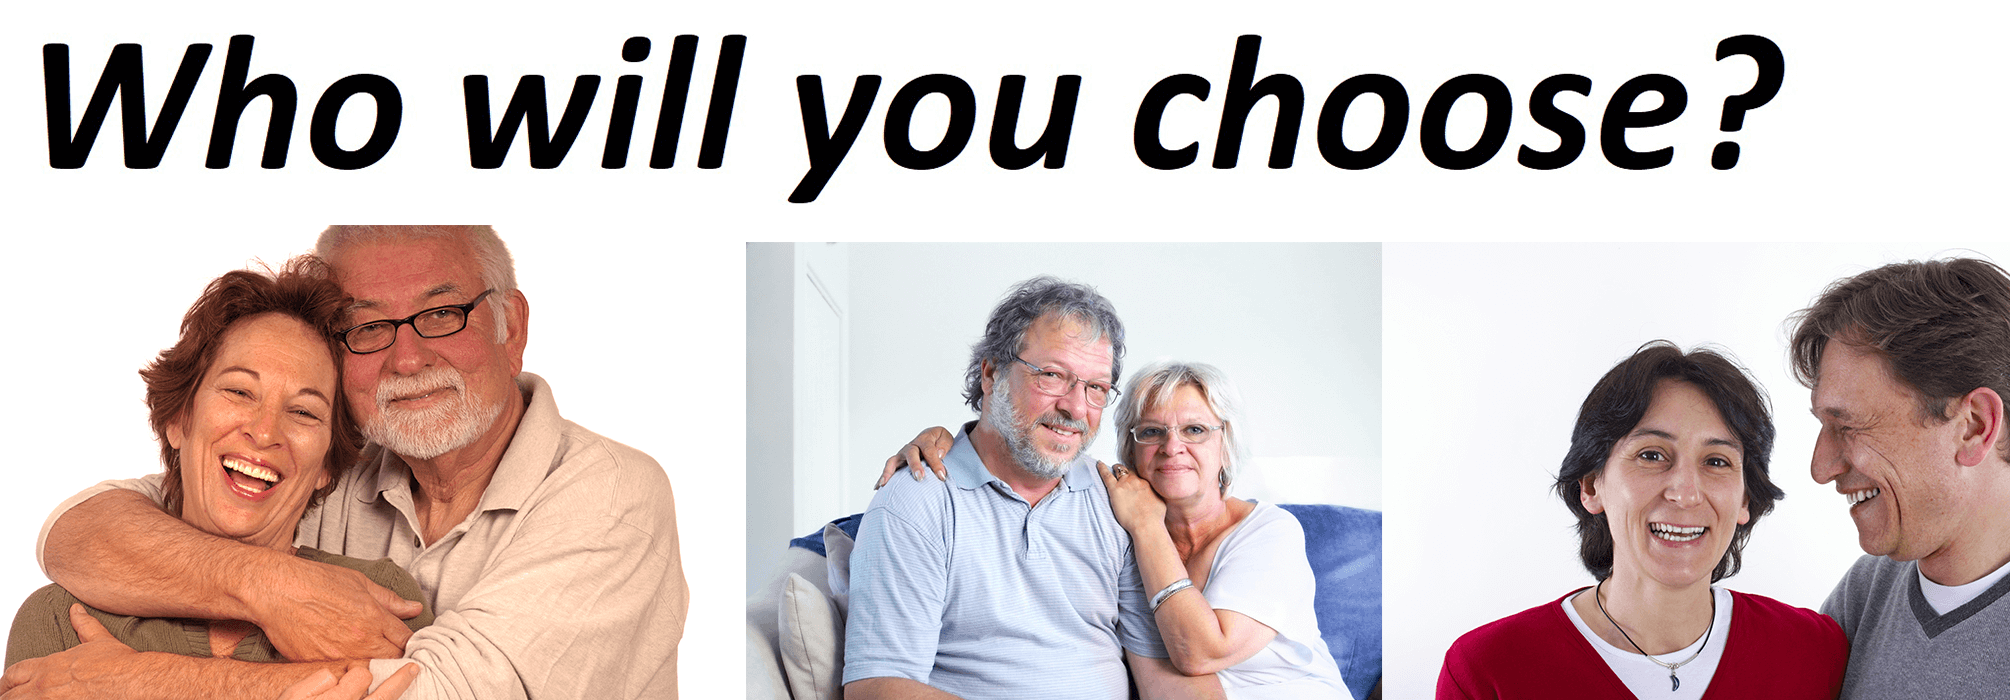 who-will-banner